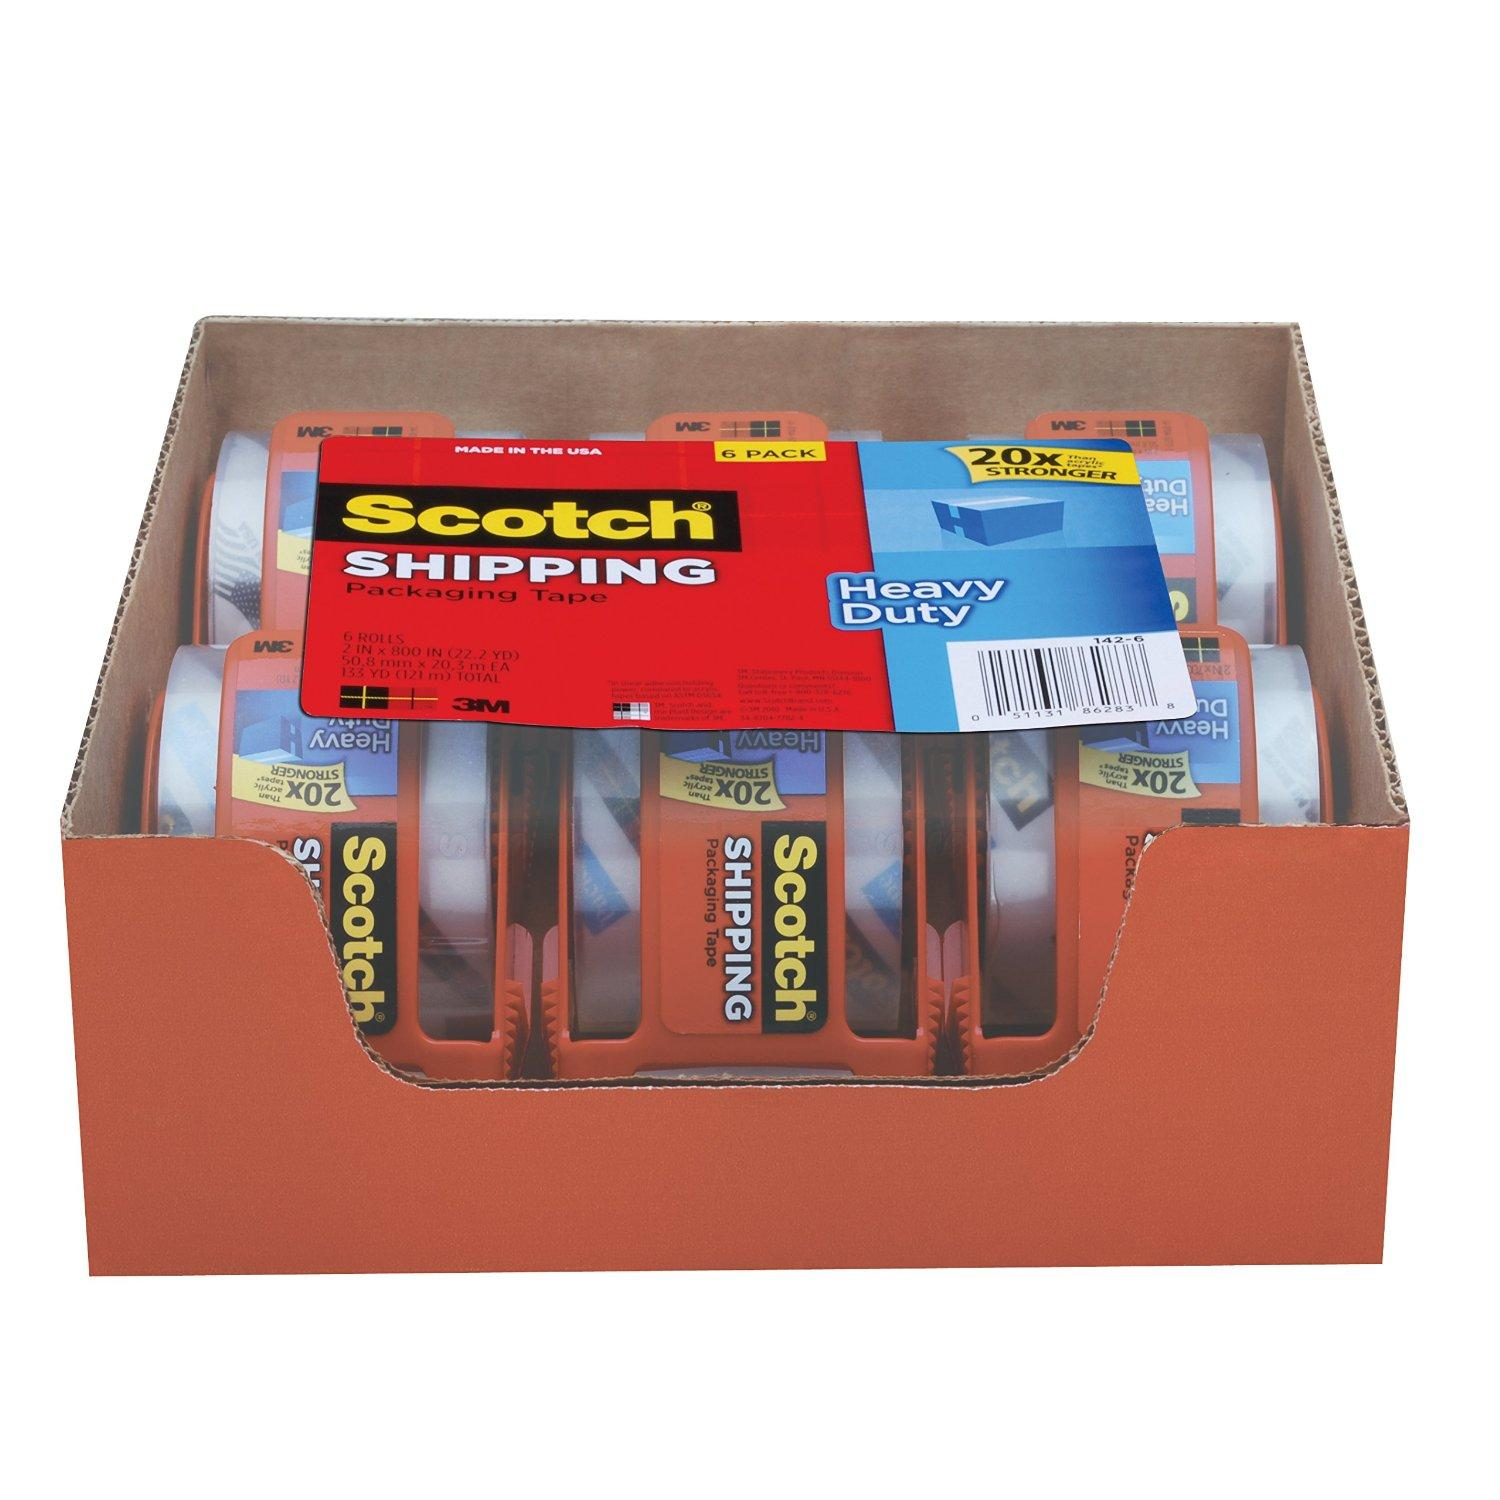 Scotch Heavy Duty Shipping Packaging Tape 6 Rolls with Dispenser